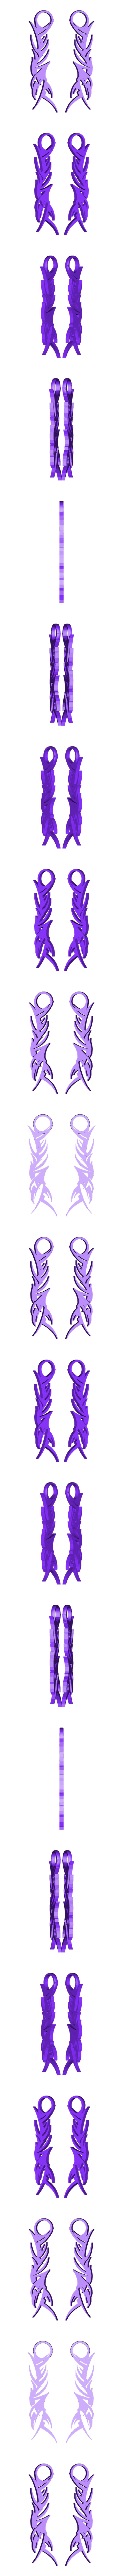 boucle d oreille  tribal.stl Download free STL file earring • Model to 3D print, catf3d